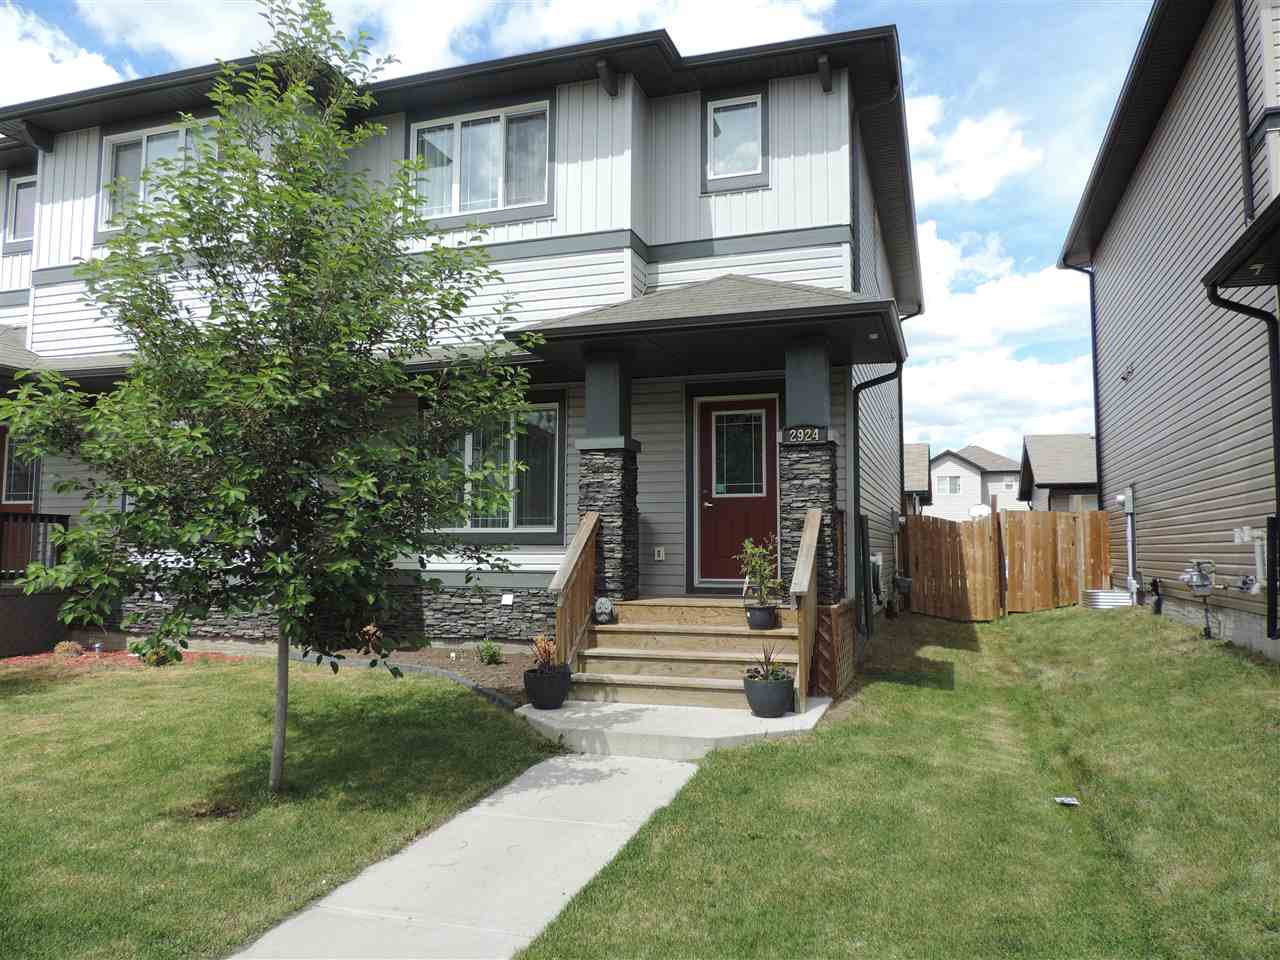 MLS® listing #E4162160 for sale located at 2924 17 Avenue